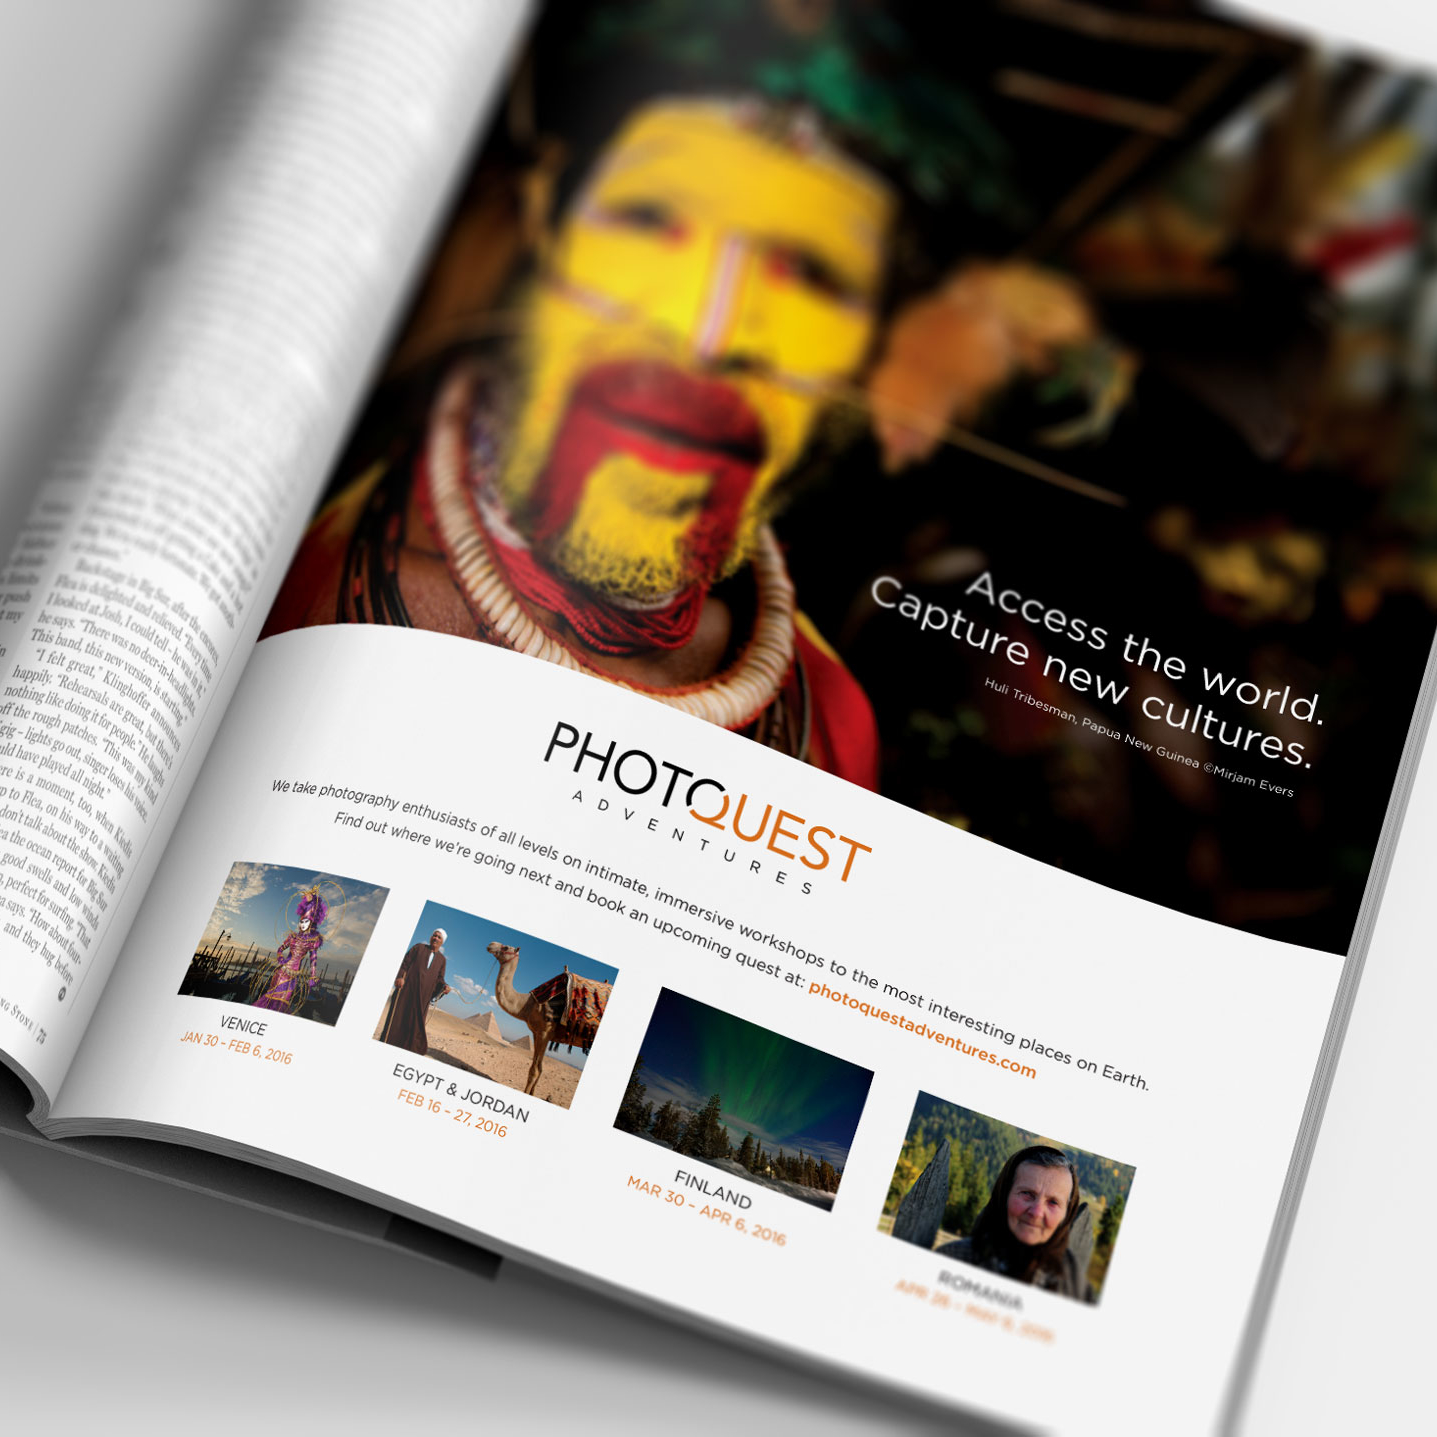 EVERGIB_PhotoQuest-Adventures_PDN_Print_Ad_CROP-BLUR_2300